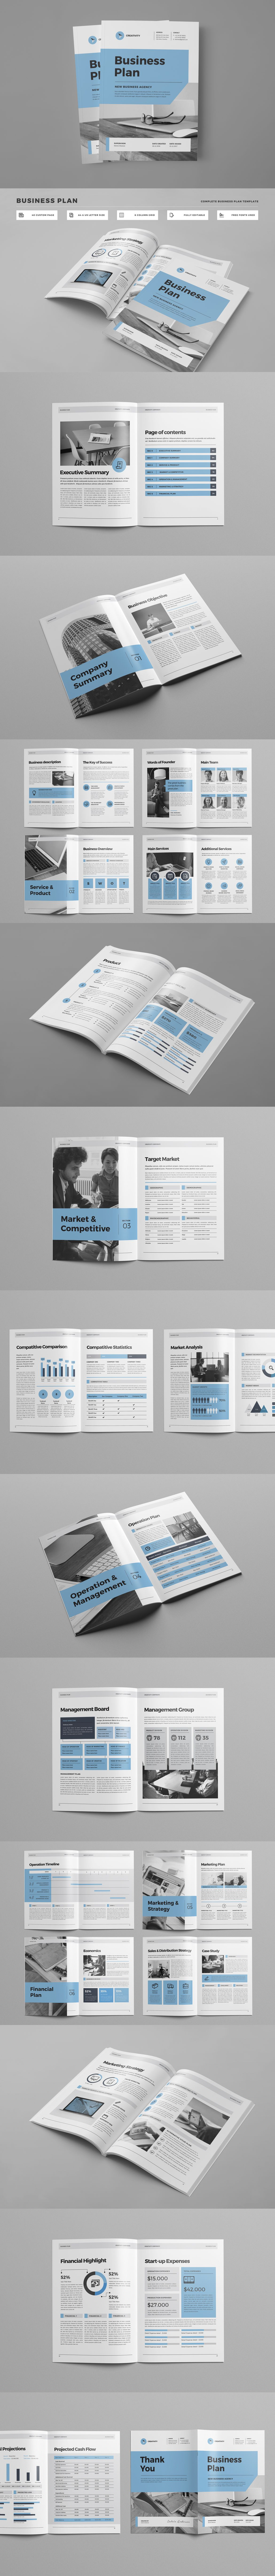 clean professional complete business plan brochure template indd